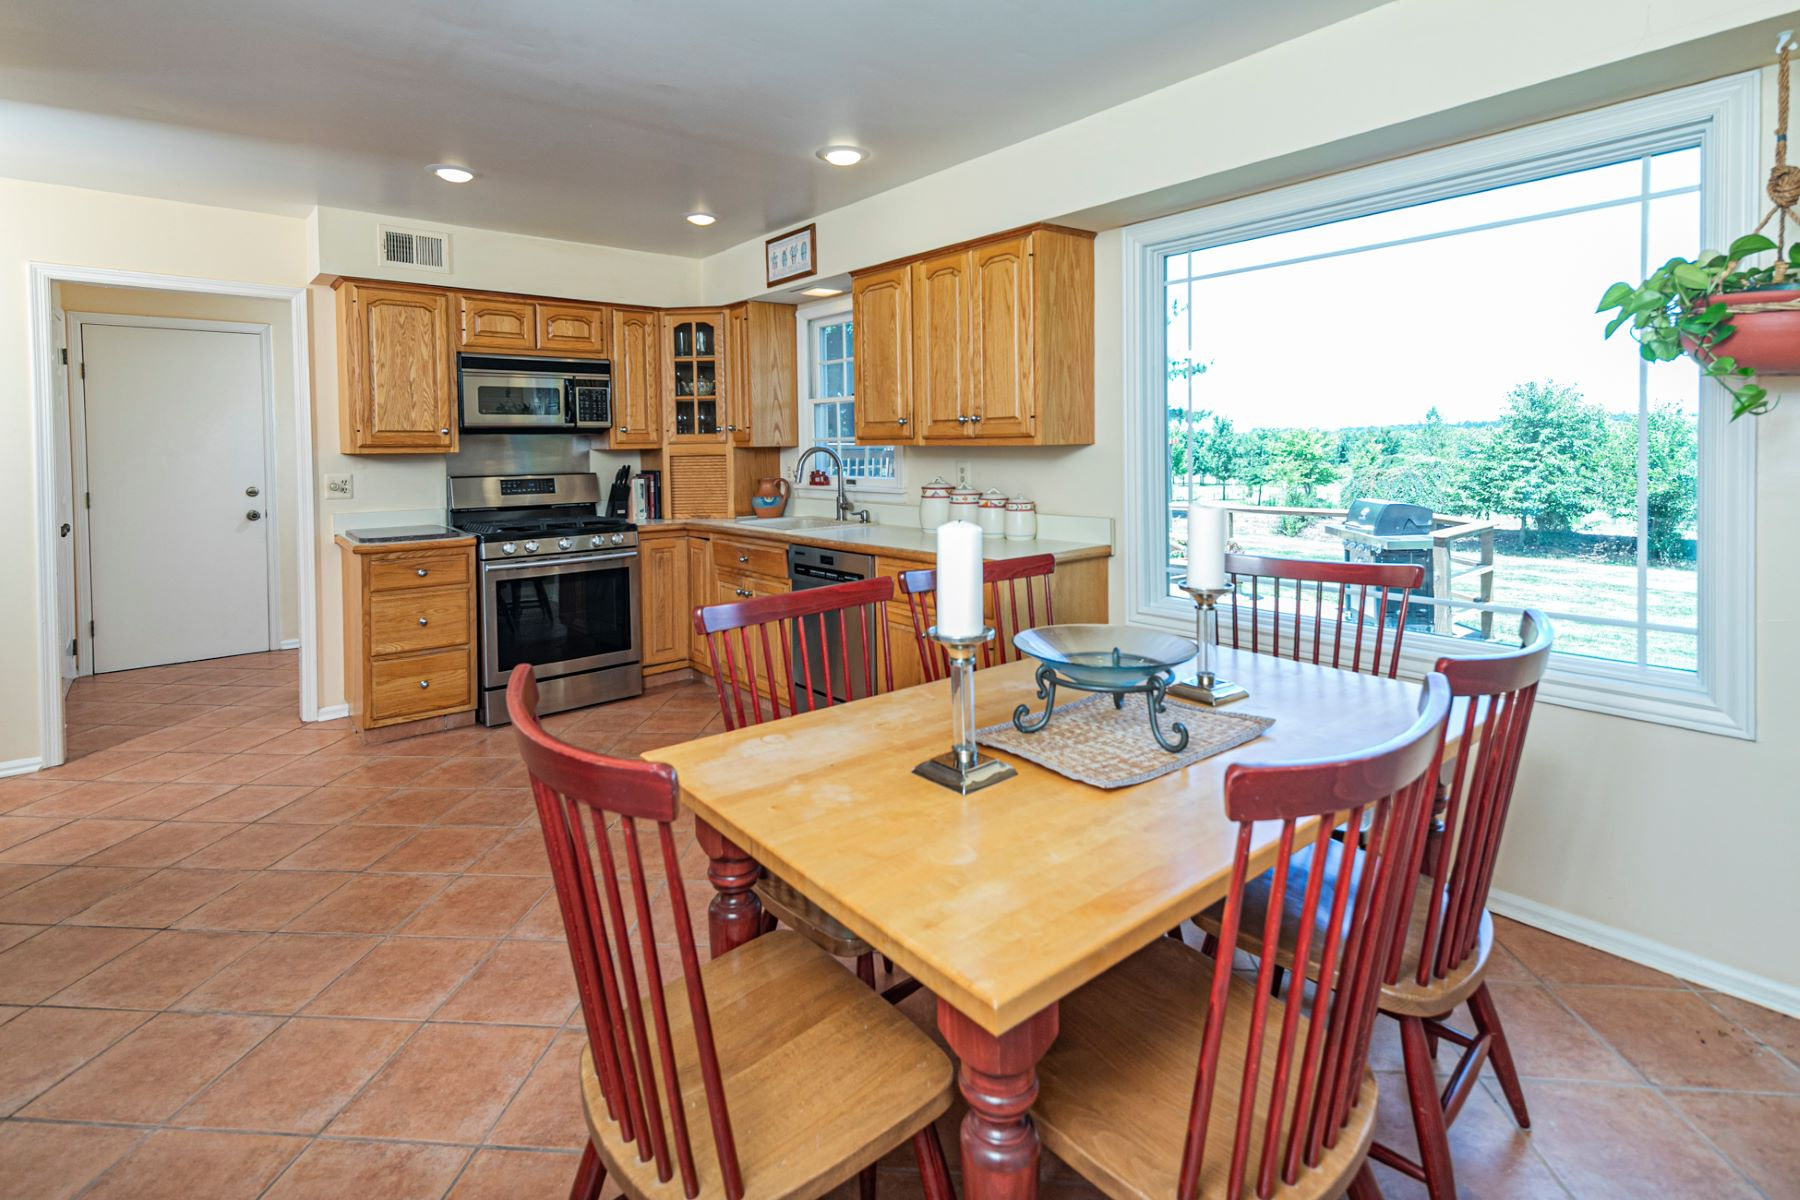 Additional photo for property listing at Shadow Oaks Colonial with Preserved Farmland Views 9 Hardley Drive, Cranbury, New Jersey 08512 United States